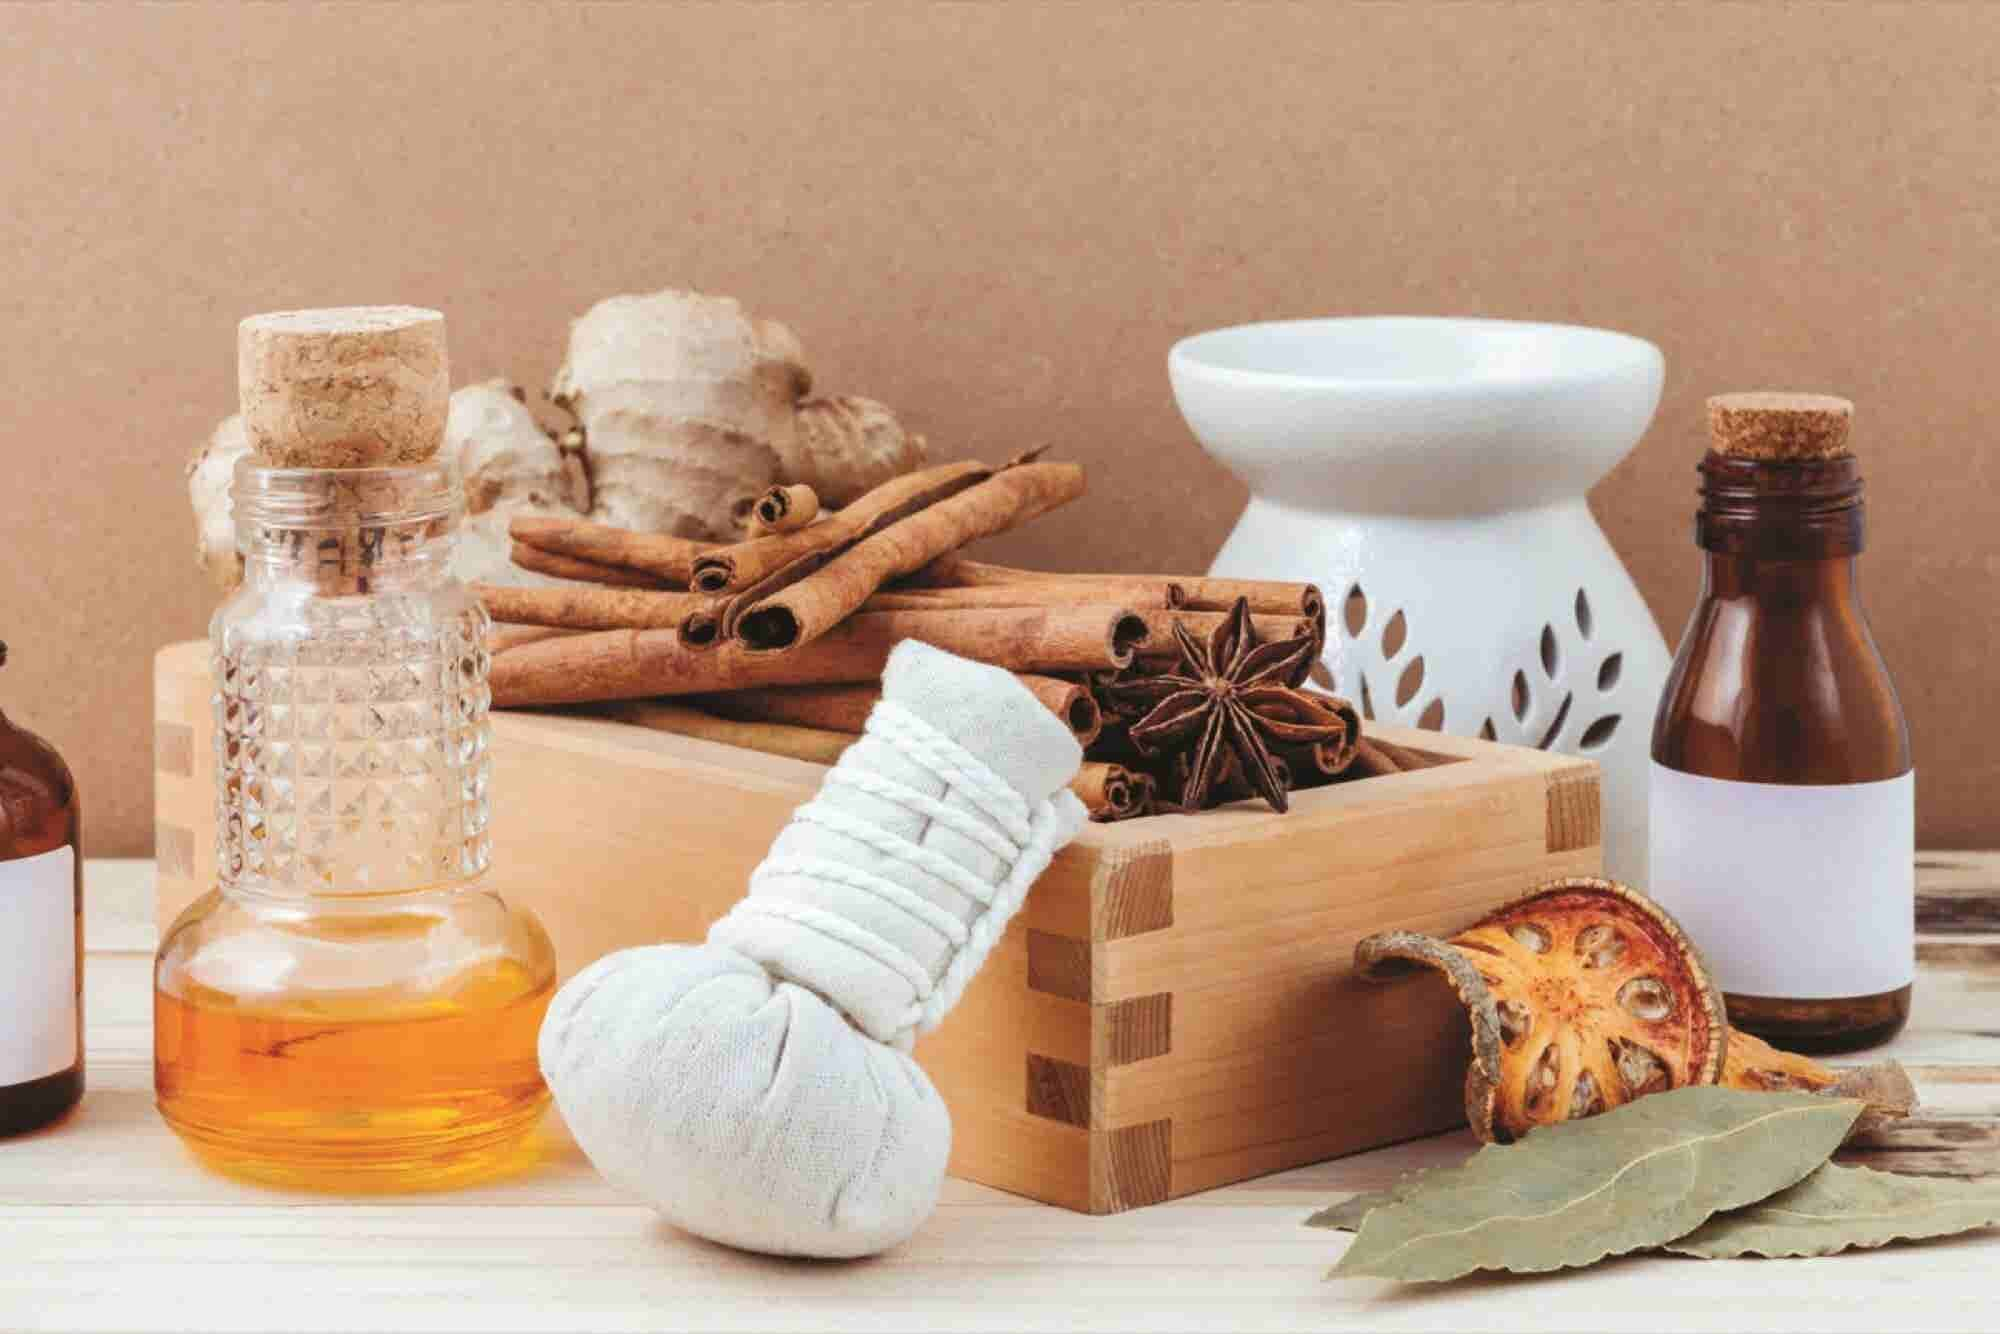 #5 Reasons Why Ayurveda is a Great Career Option